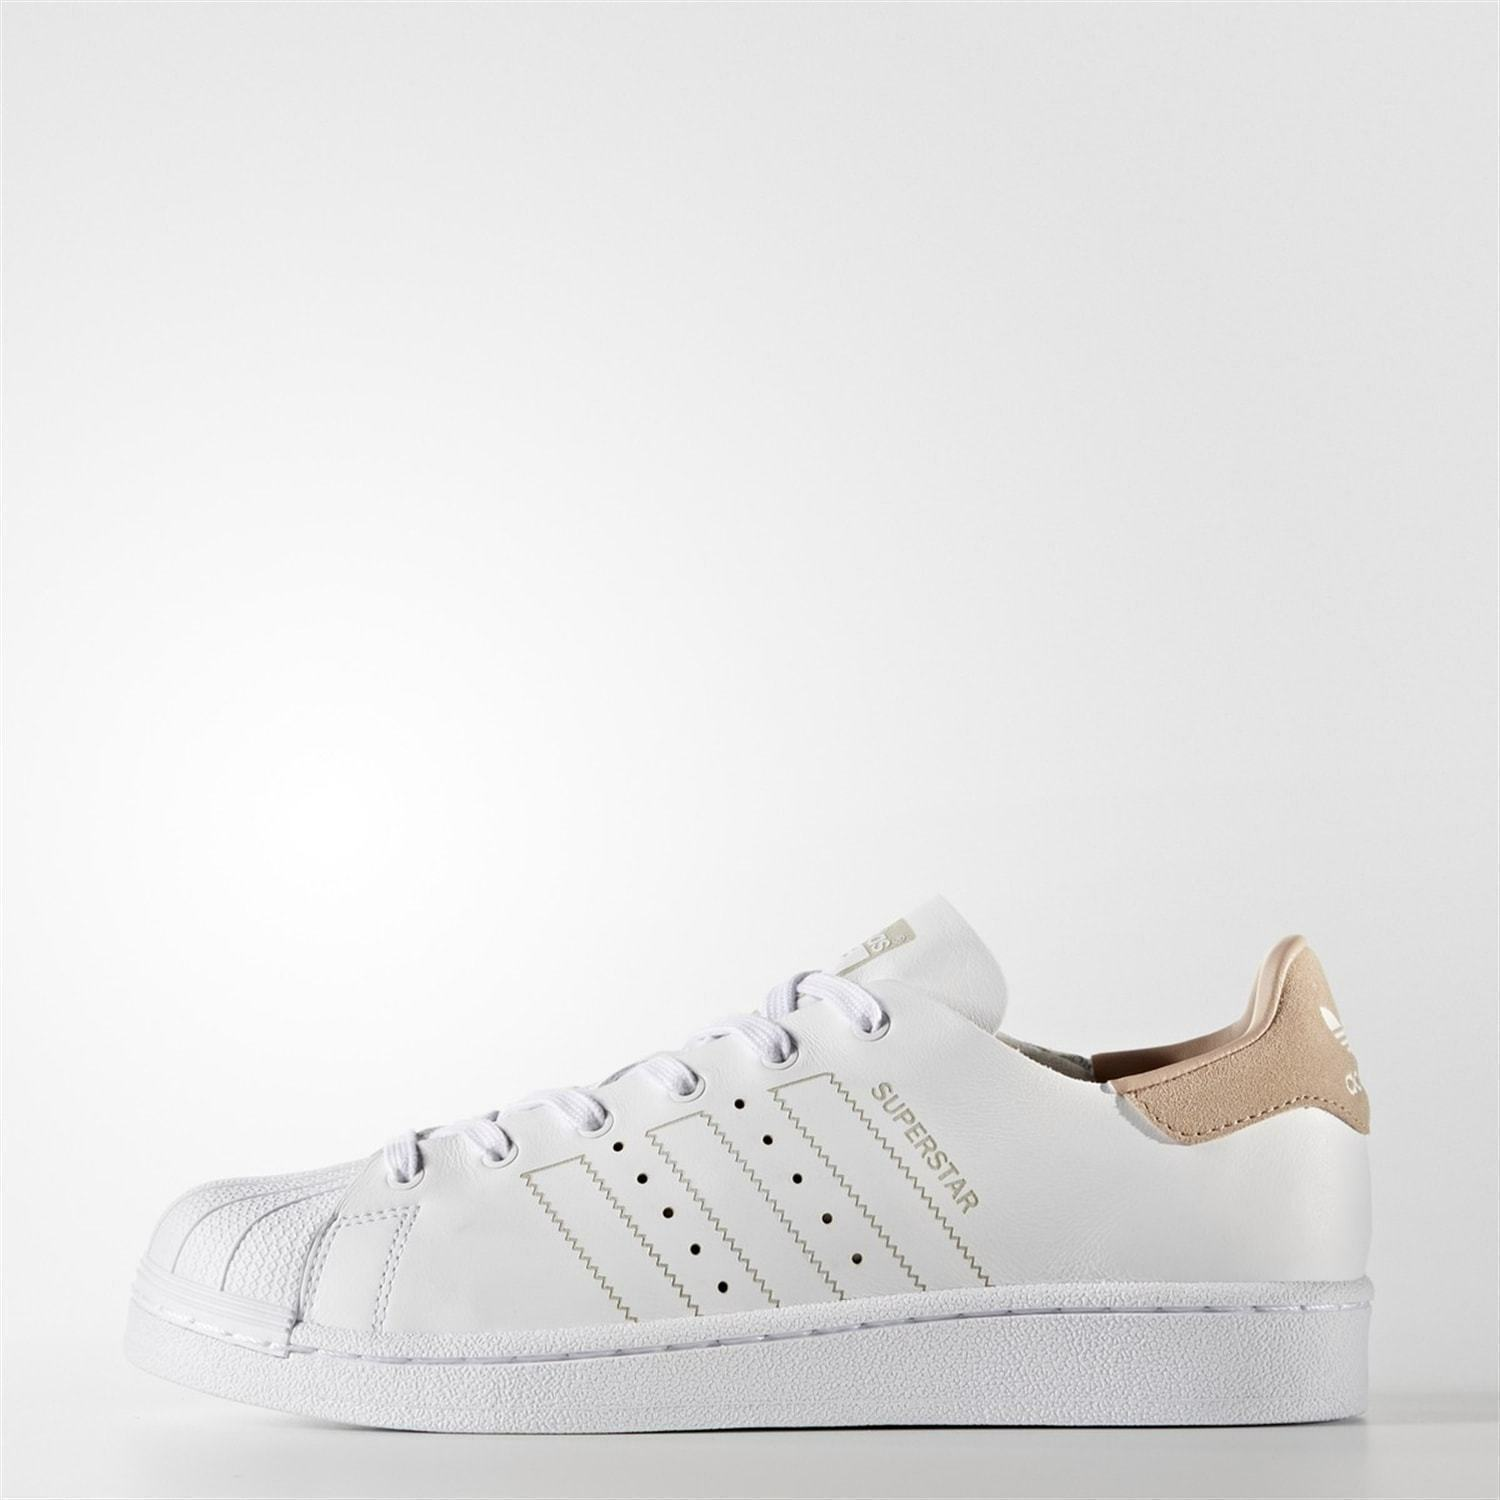 Adidas Originals Women's Superstar Decon Sneakers Size 9.5 us BY8703